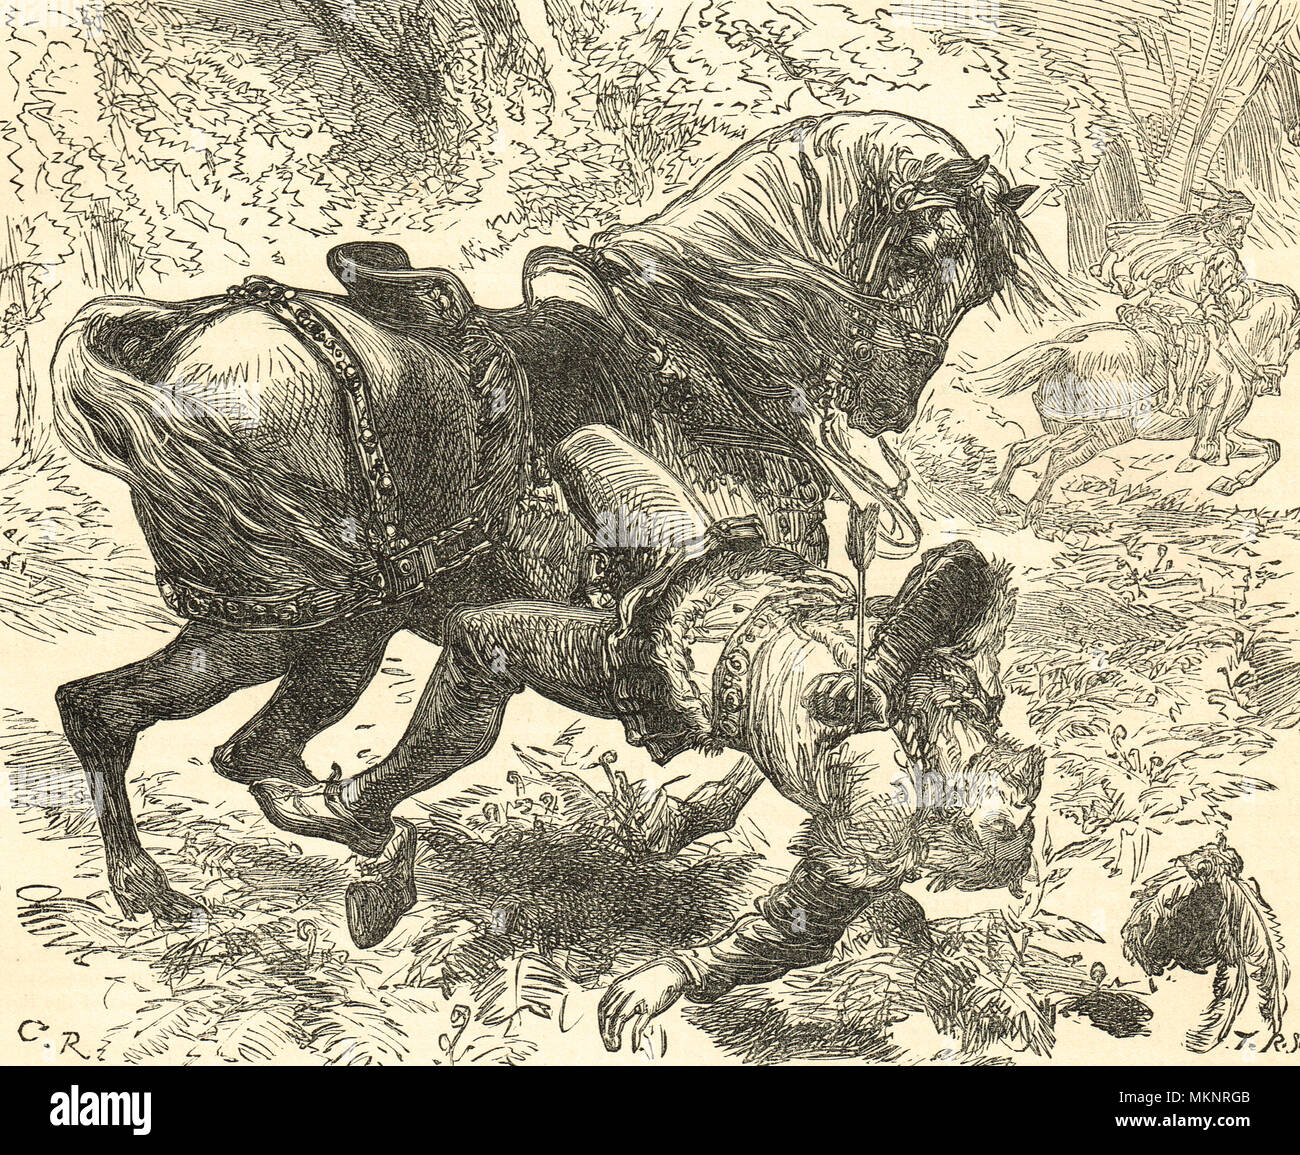 The Death of William Rufus, New Forest, 2 August 1100, struck by an arrow while hunting, under circumstances that remain unclear, with unproven suspicions of murder - Stock Image